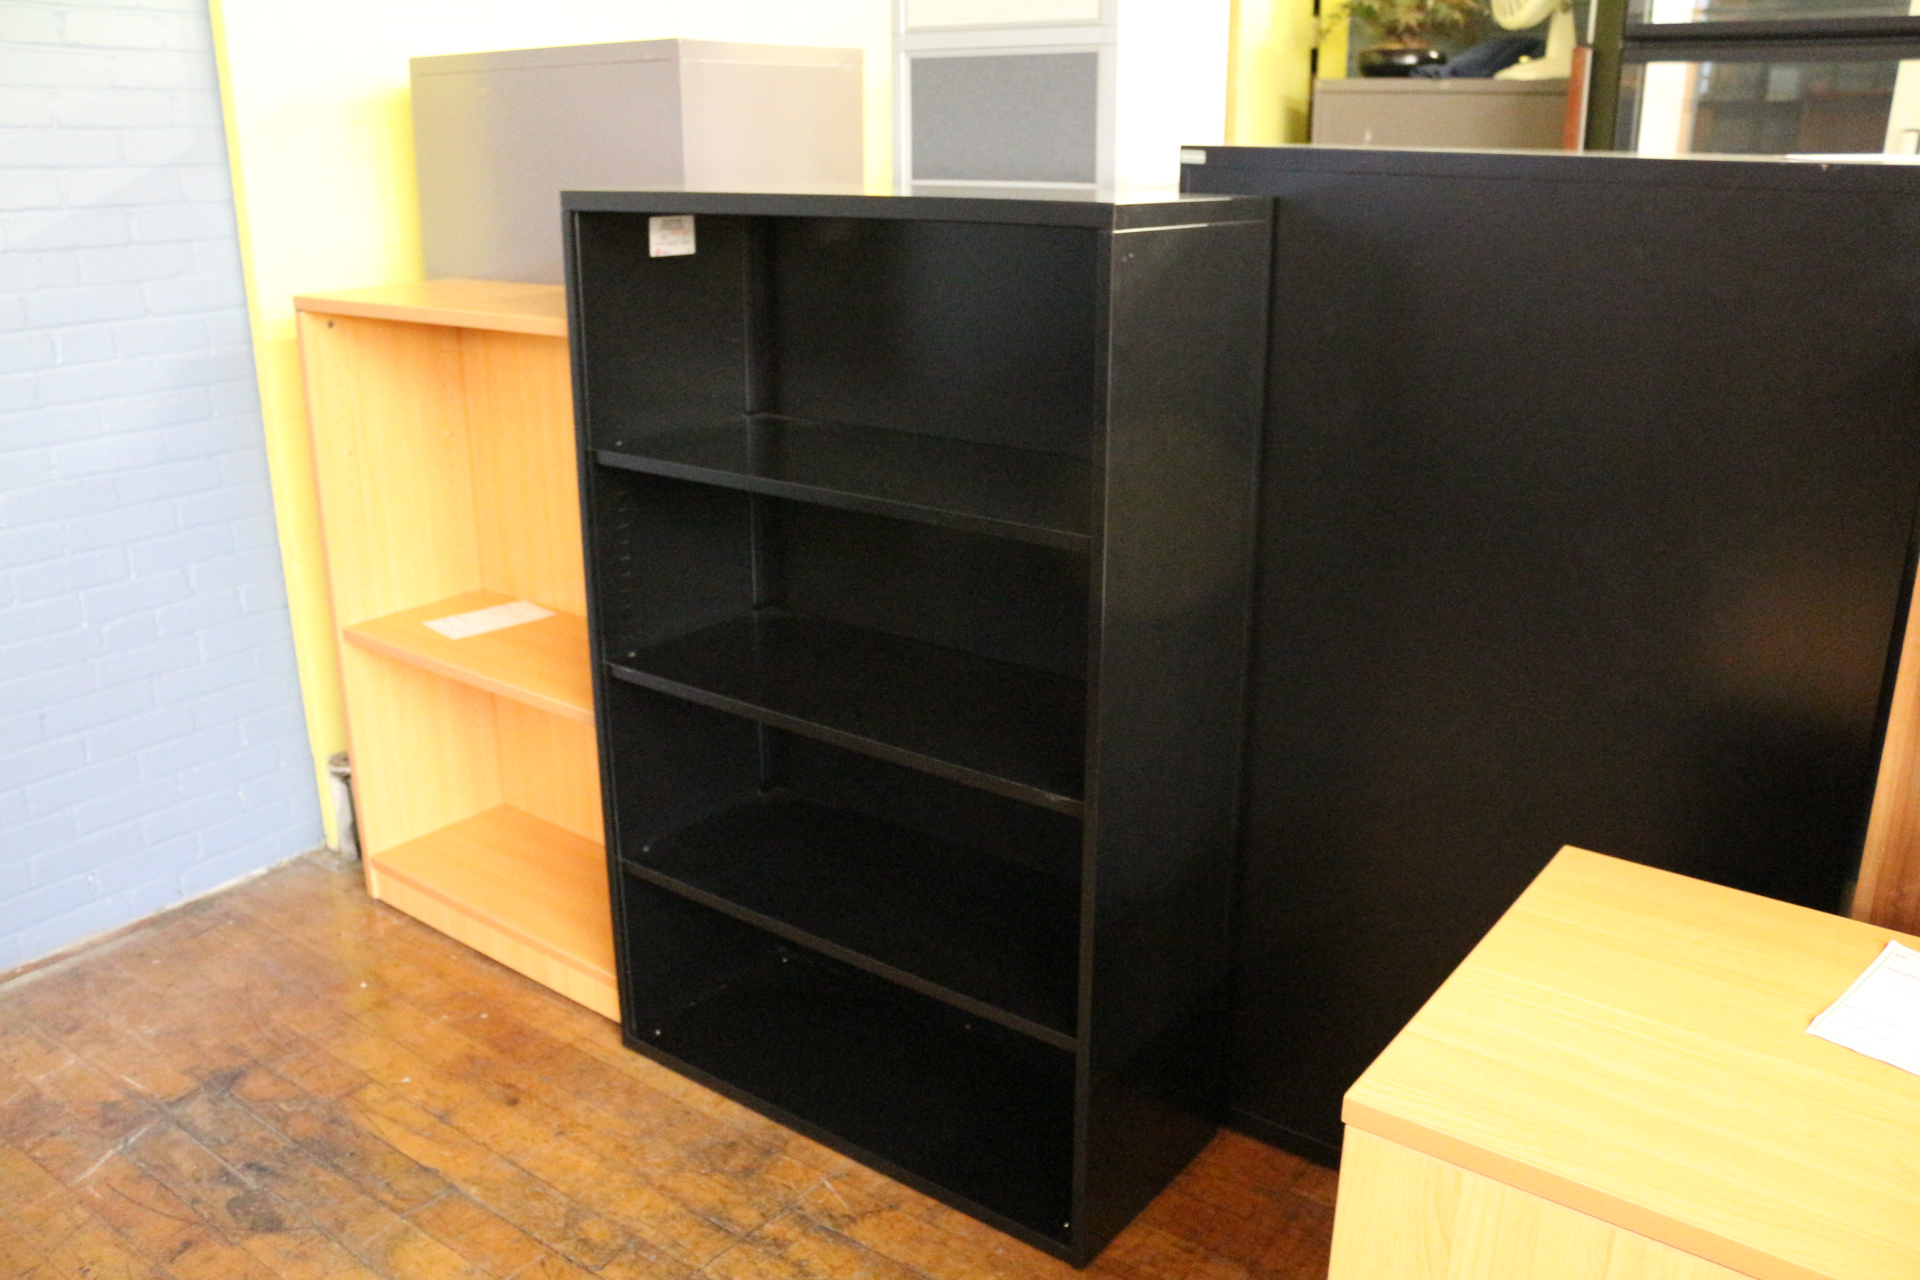 peartreeofficefurniture_peartreeofficefurniture_img_0629.jpg